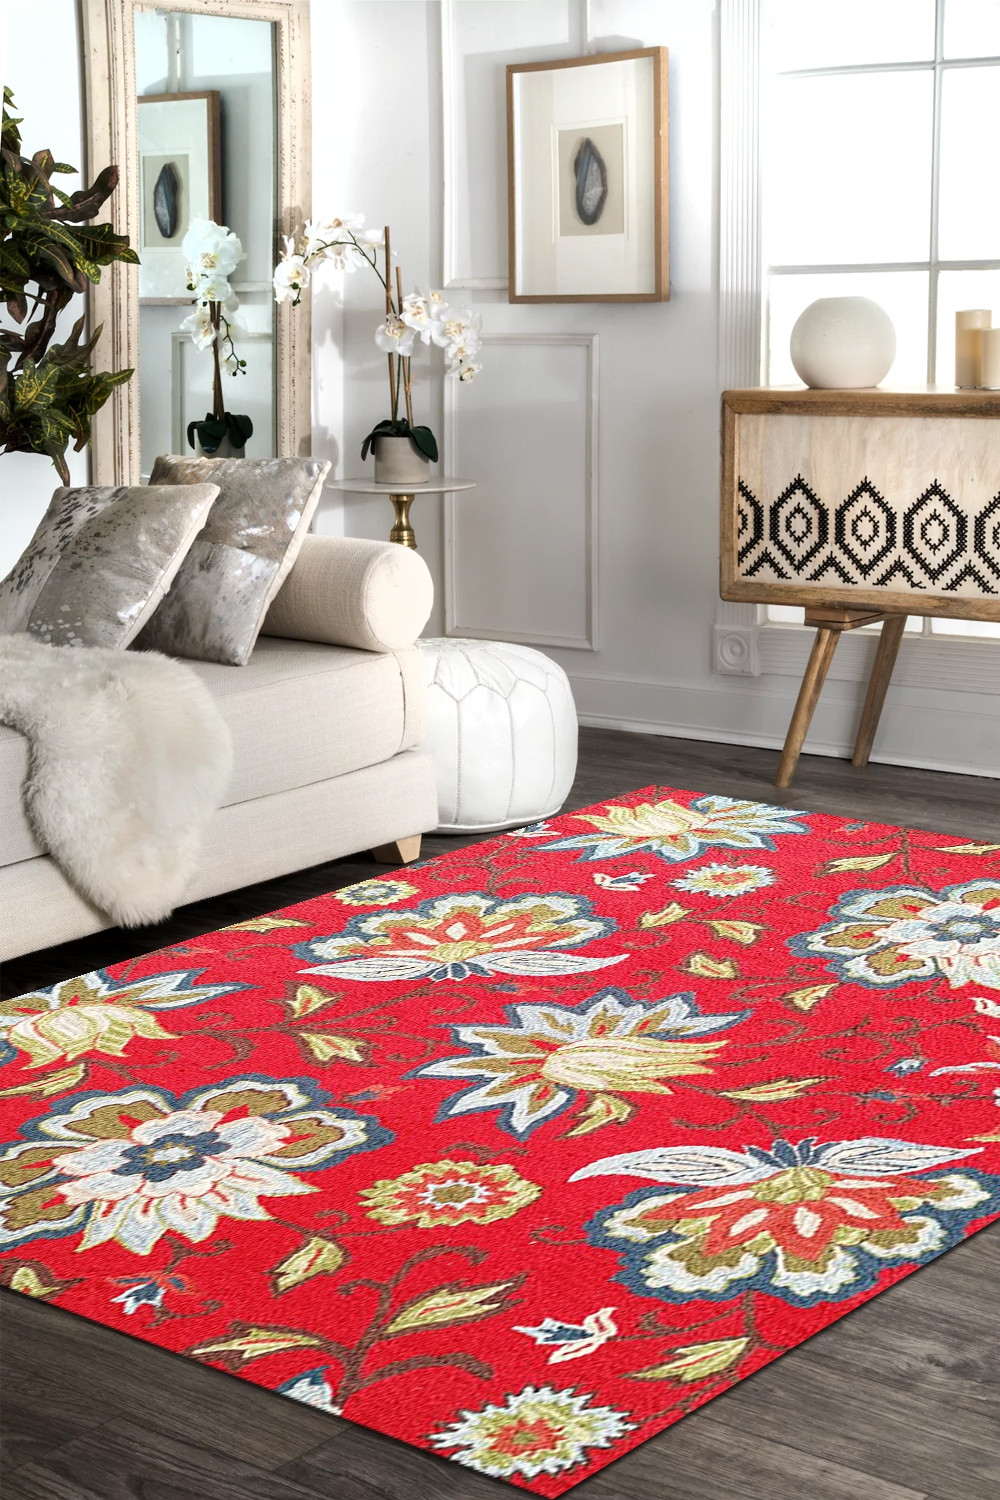 Fl Cherry Hand Tufted Wool Rug